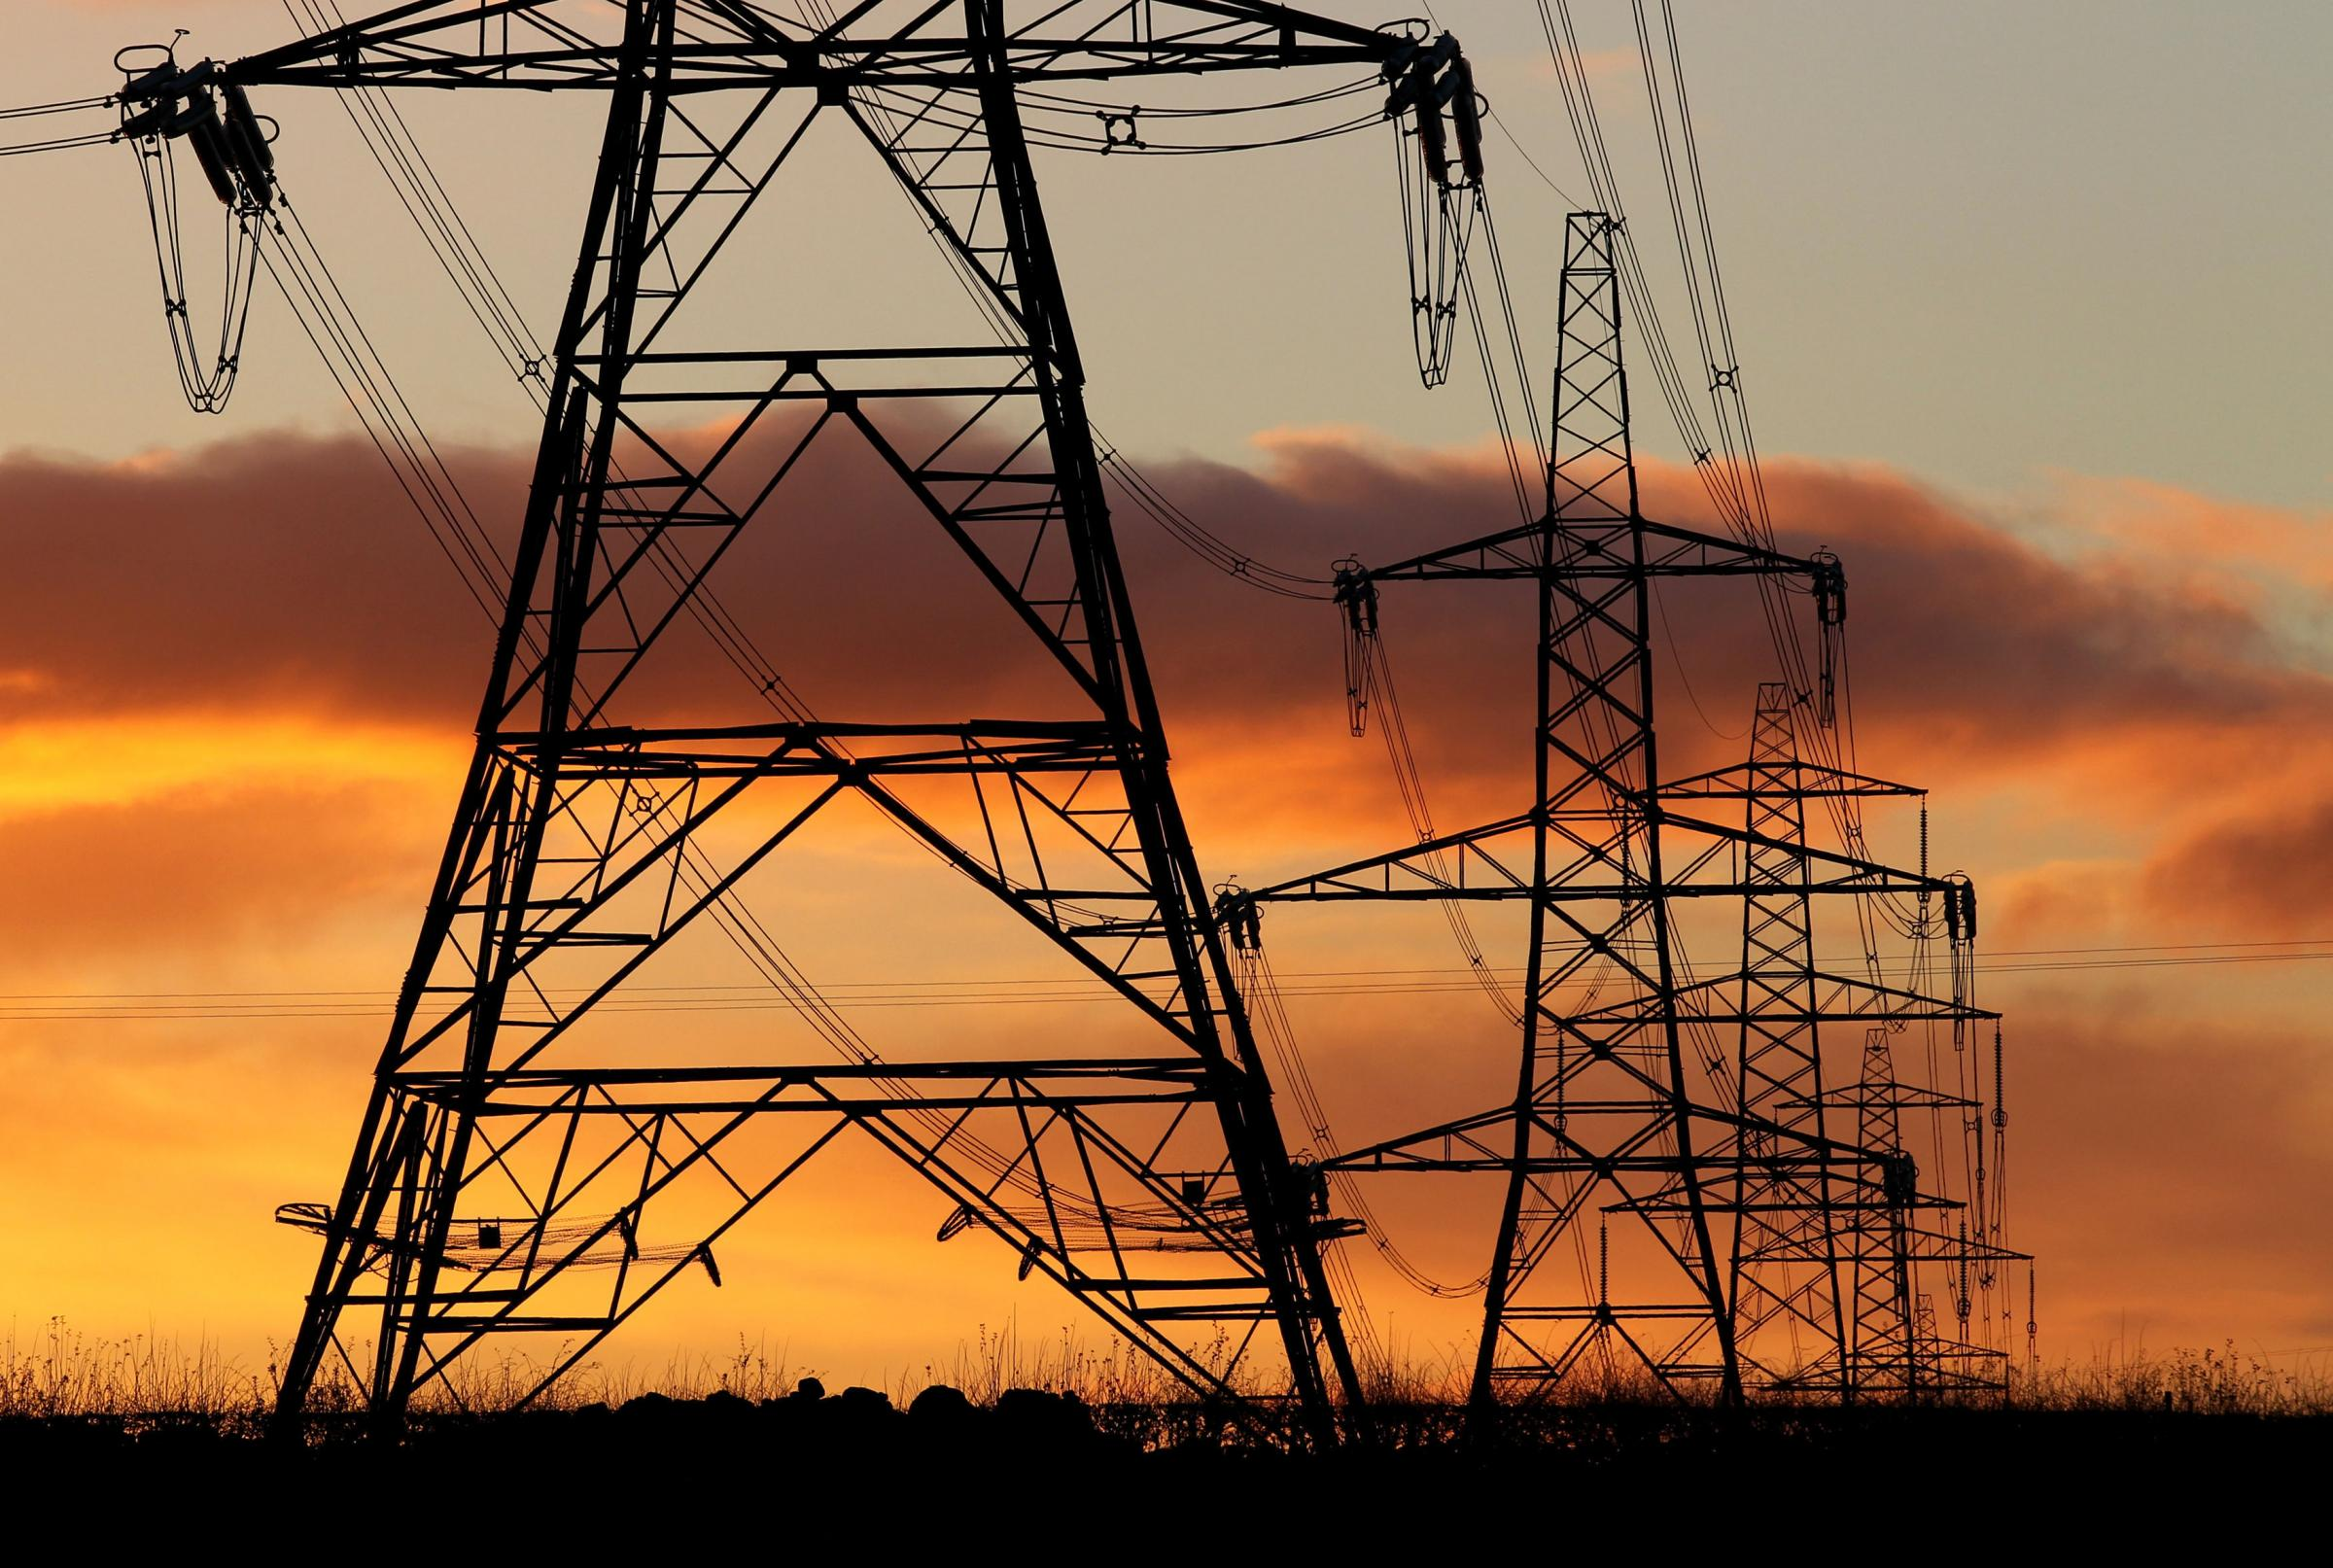 npower owner notes retail merger talks with SSE could fall apart